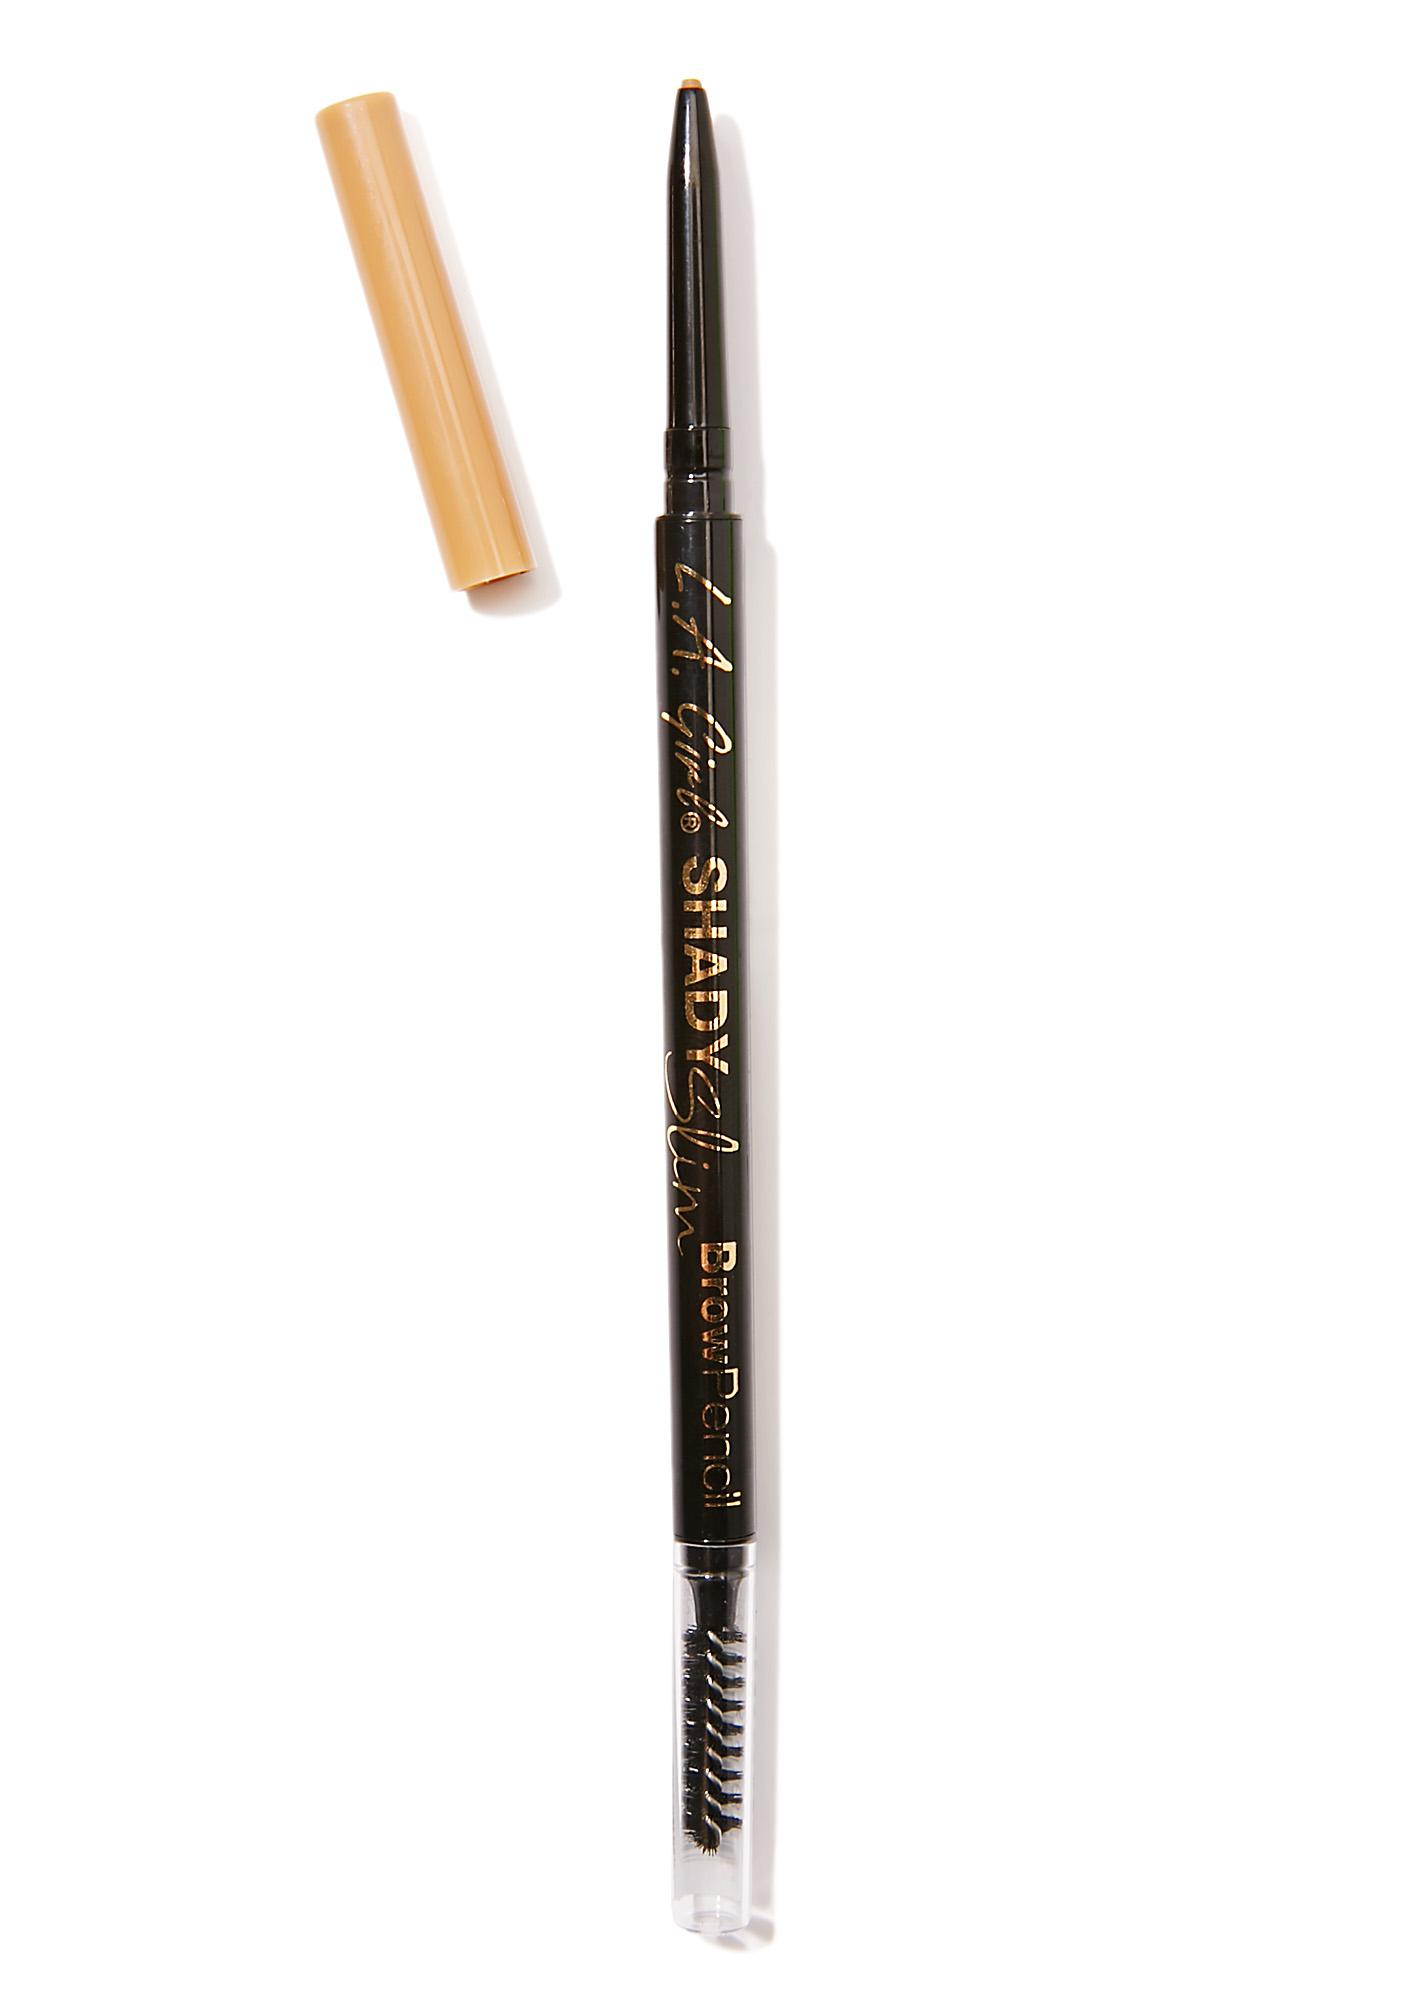 LA Girl Shady Slim Blonde Brow Pencil